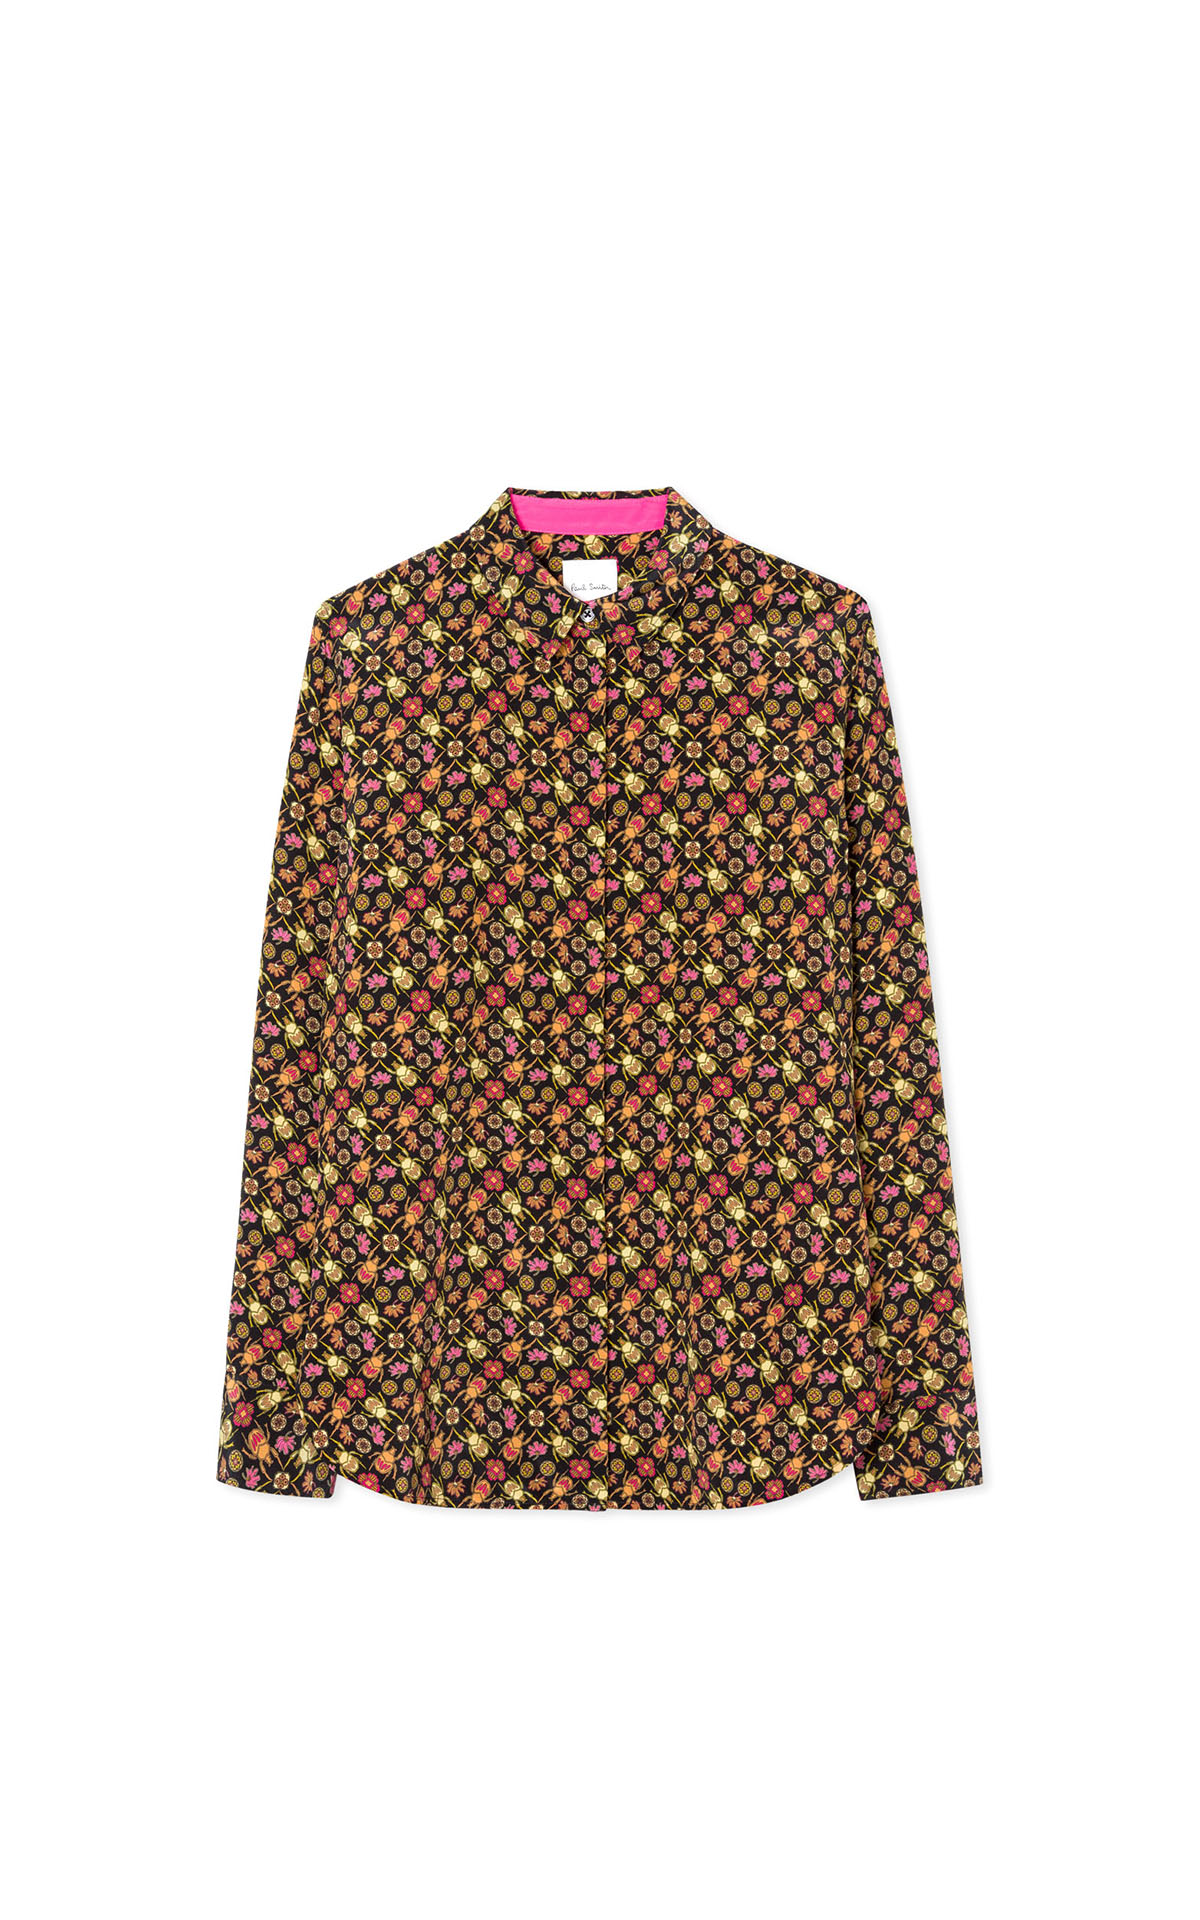 Paul Smith Woman's black 'goliath beetle' shirt at The Bicester Village Shopping Collection